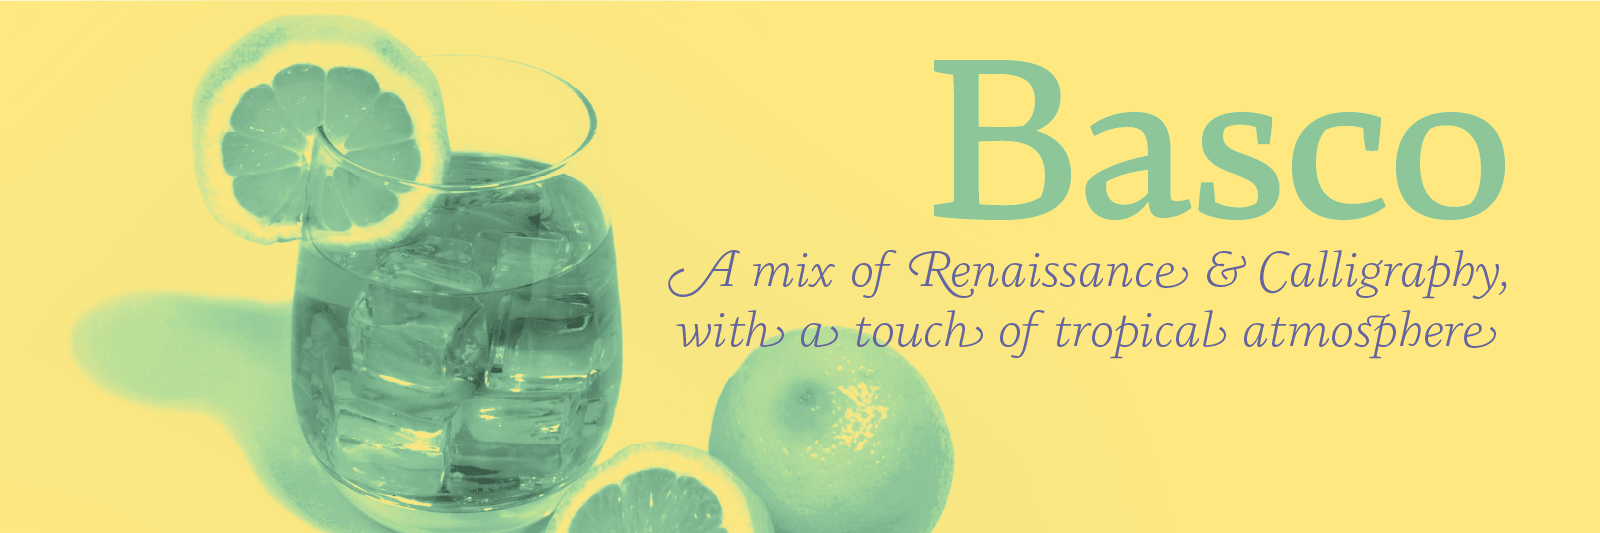 Basco, a mix of Renaissance & tropical atmosphere by Bruno Mello